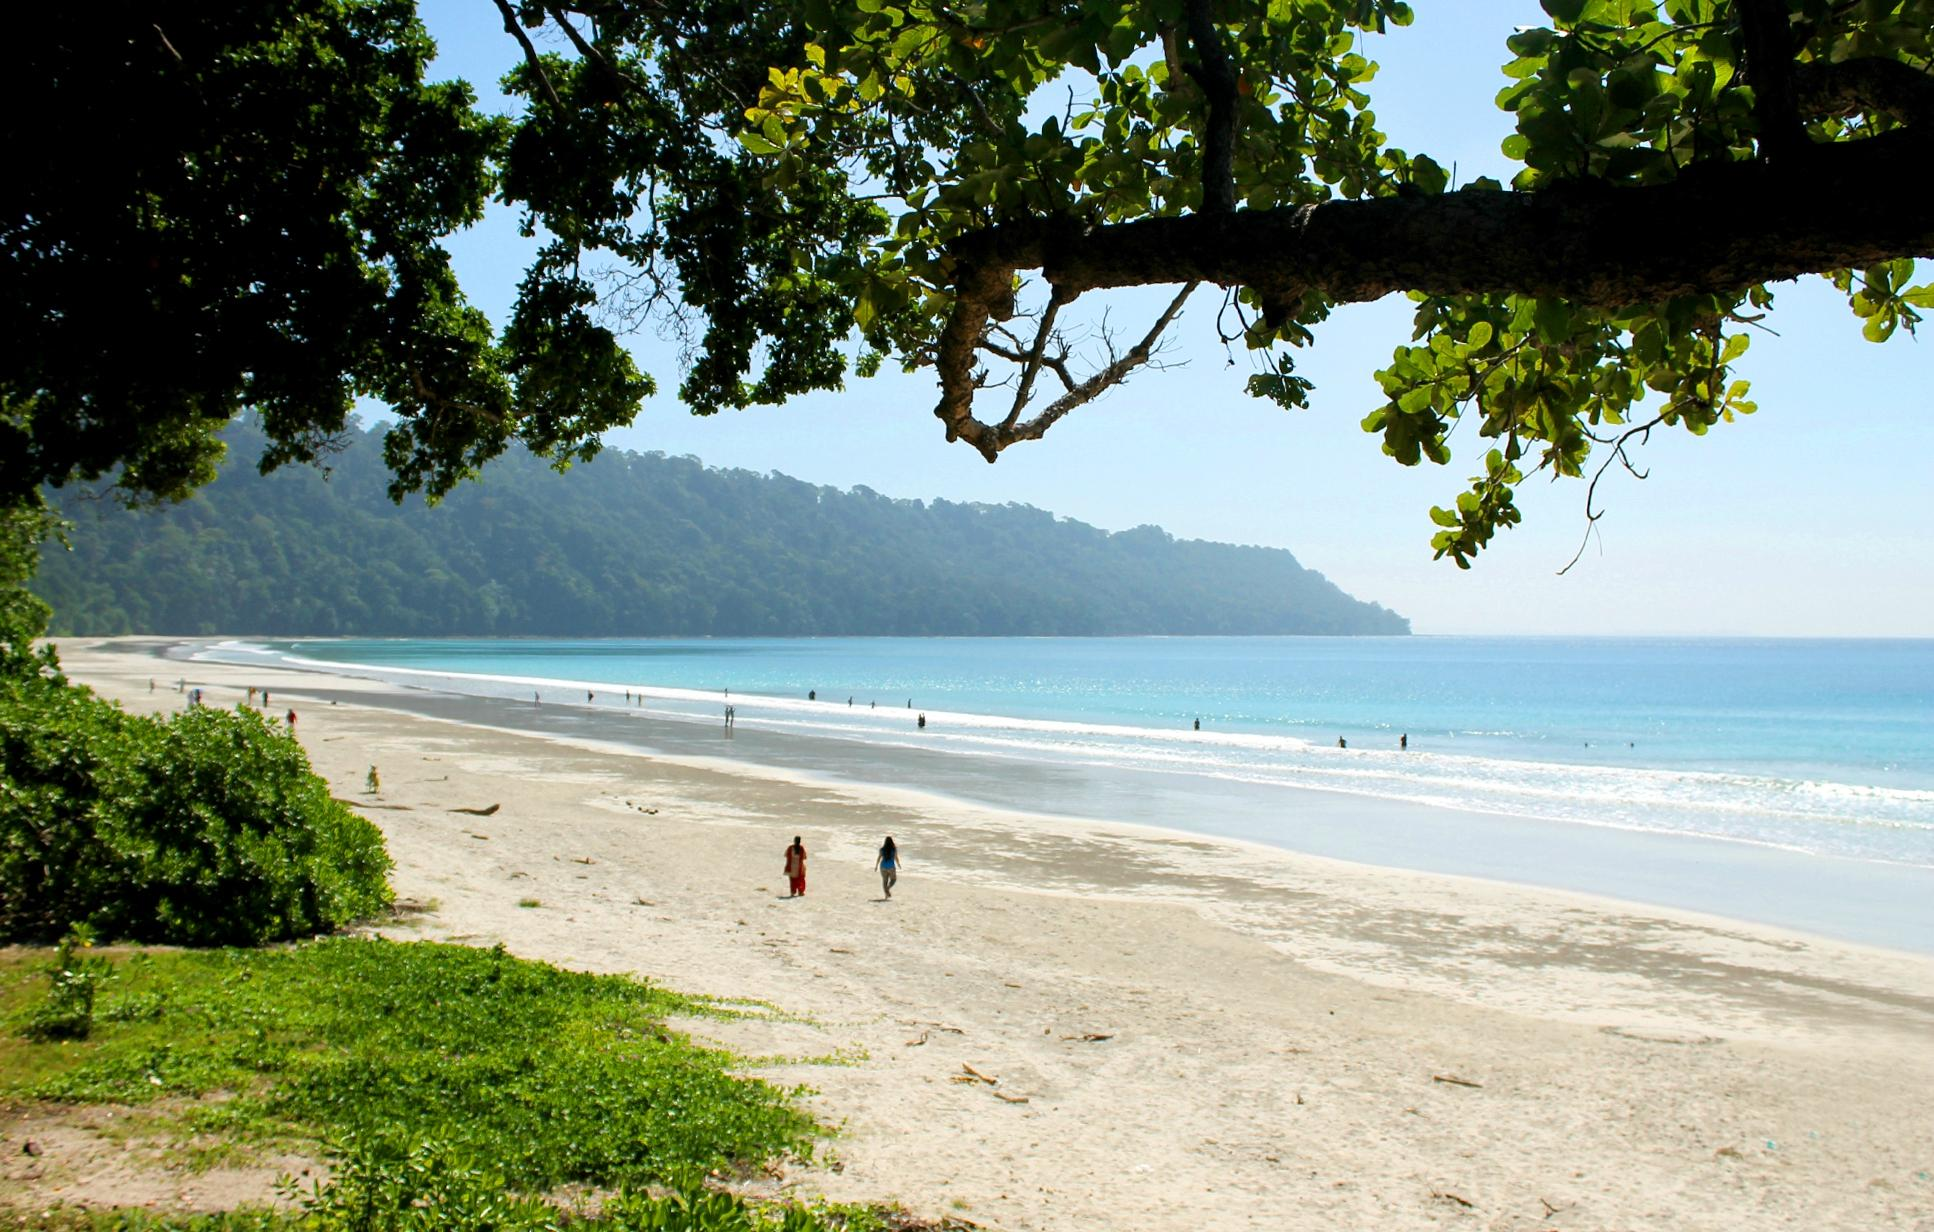 Radhanagar Beach, Andaman & Nicobar Islands